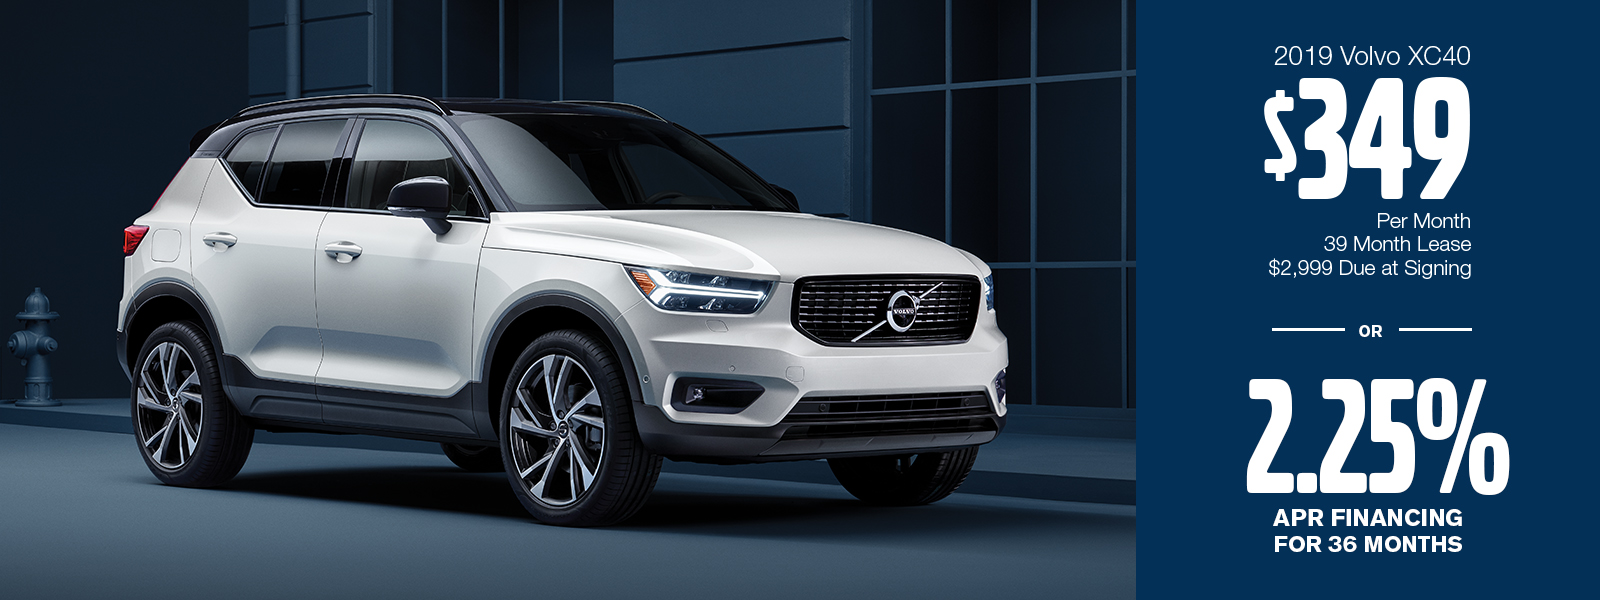 2019 XC40 Lease or Low APR Special at Volvo Cars Gilbert